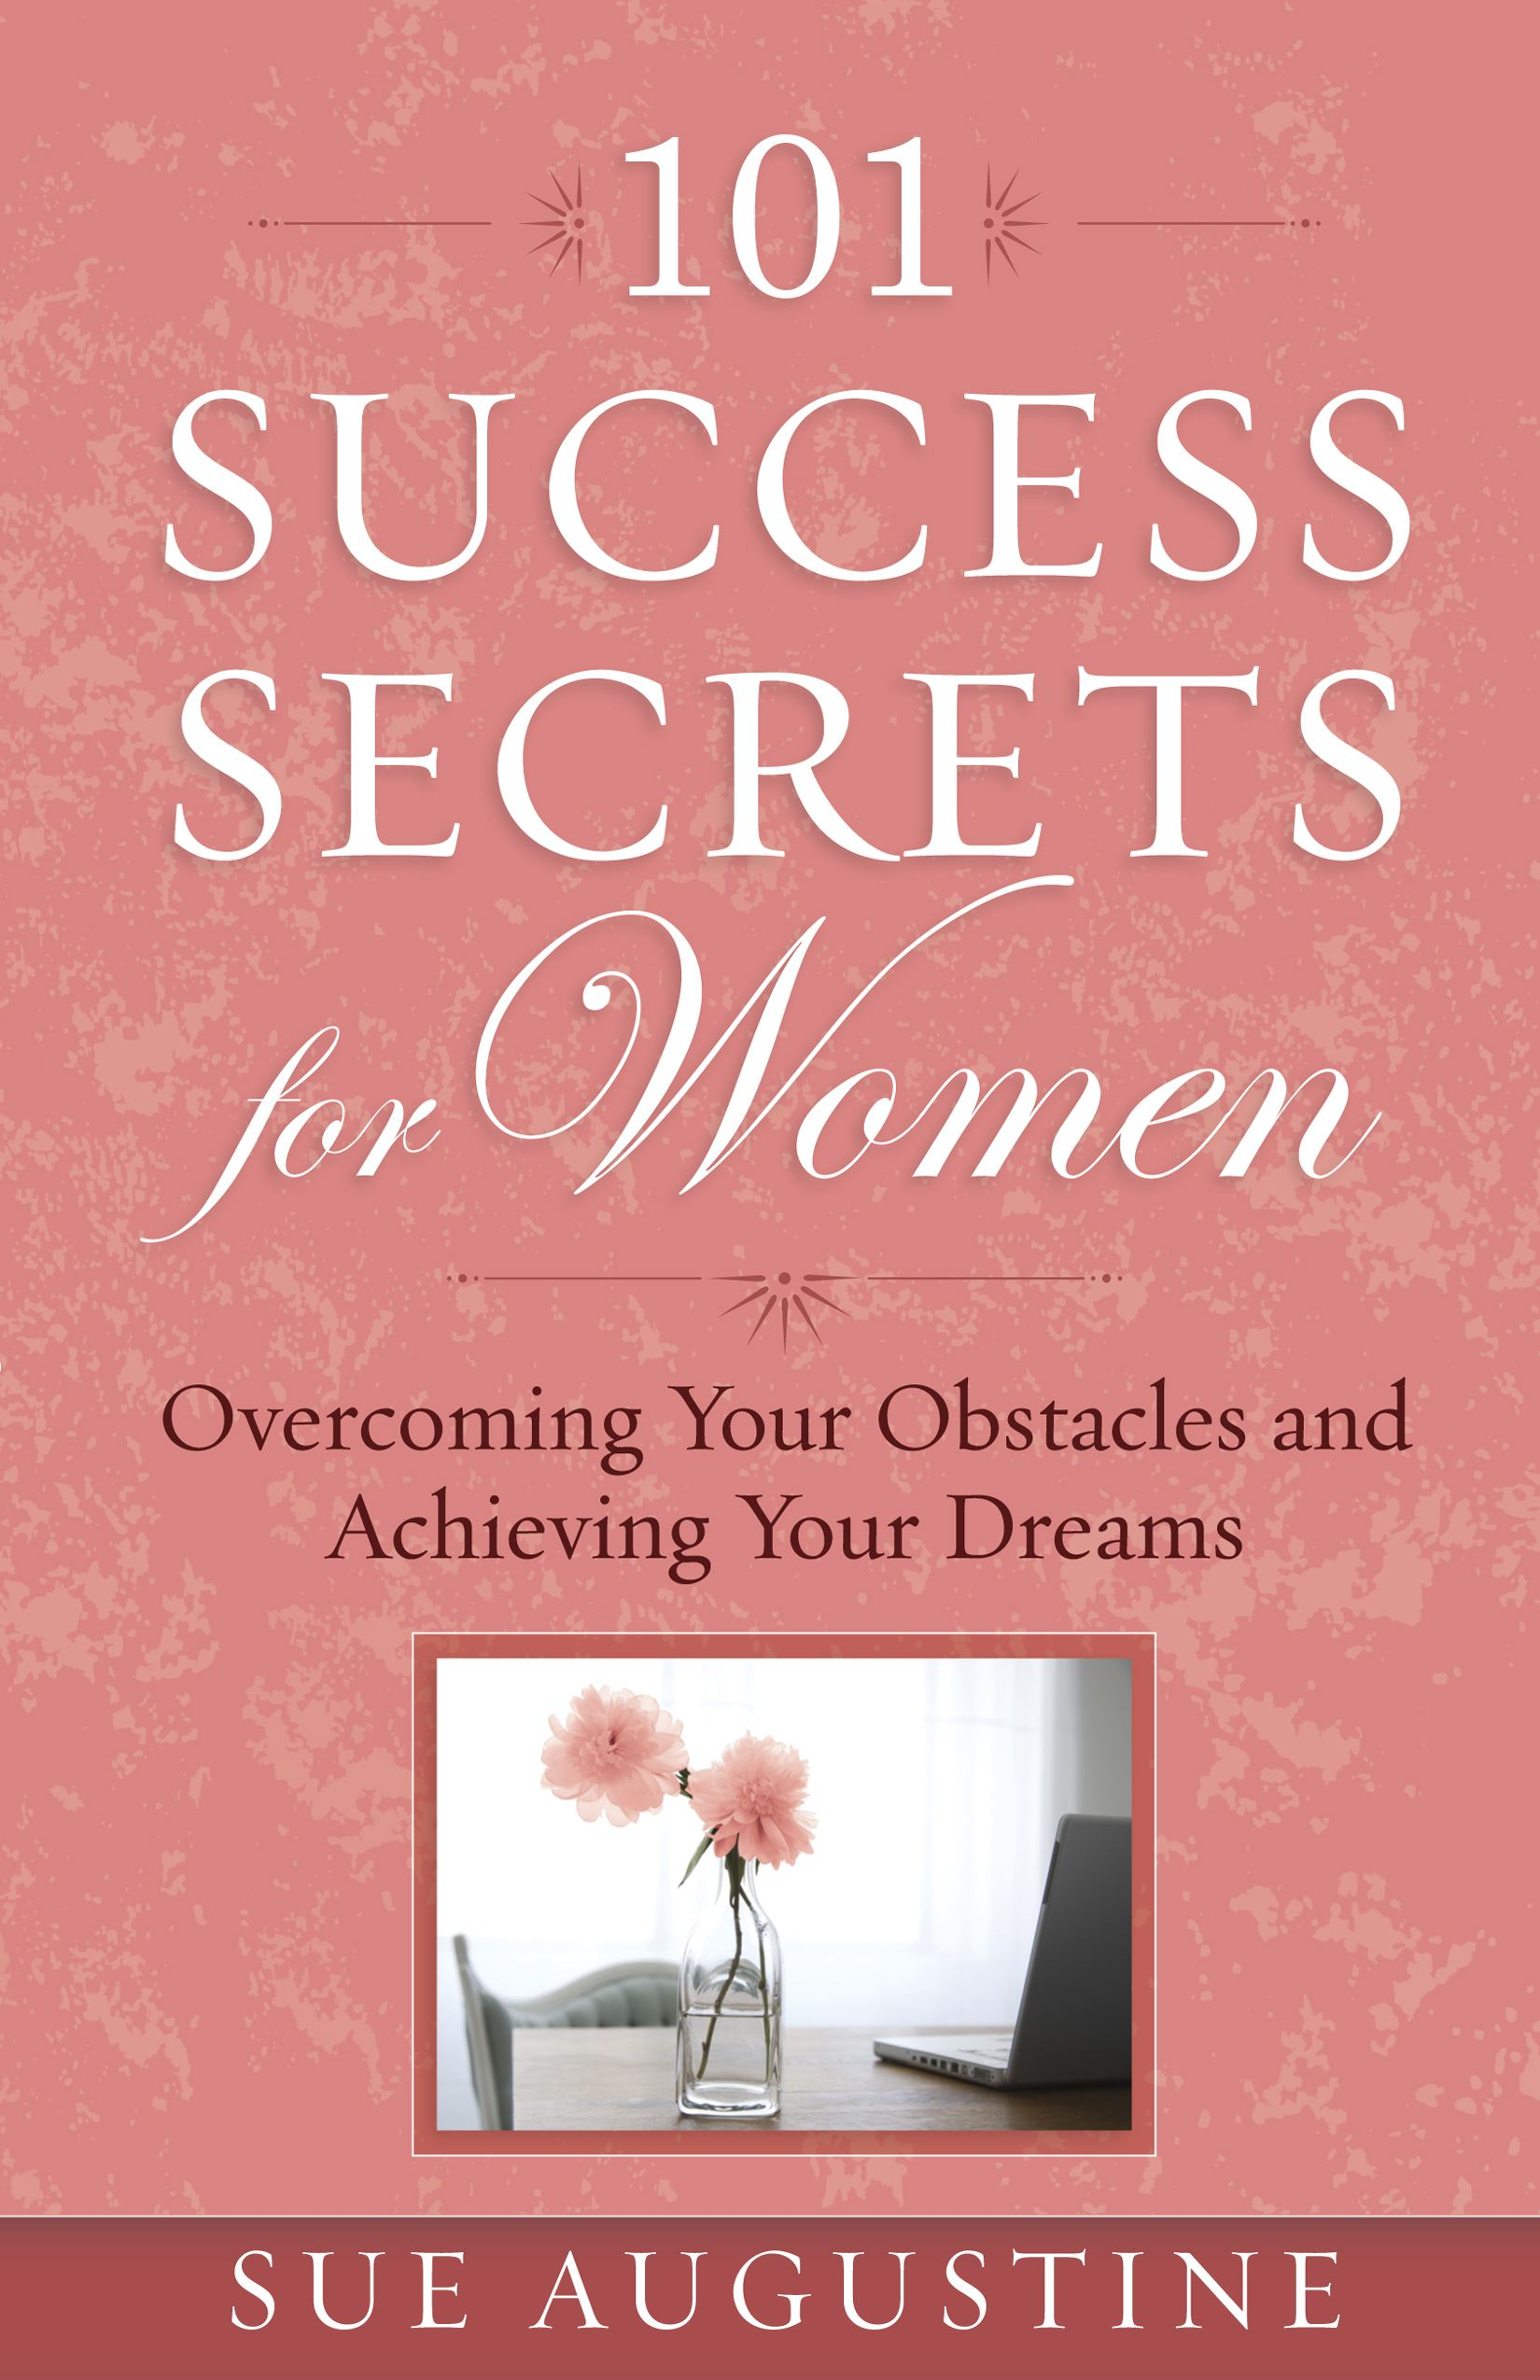 101 Success Secrets for Women By: Sue Augustine